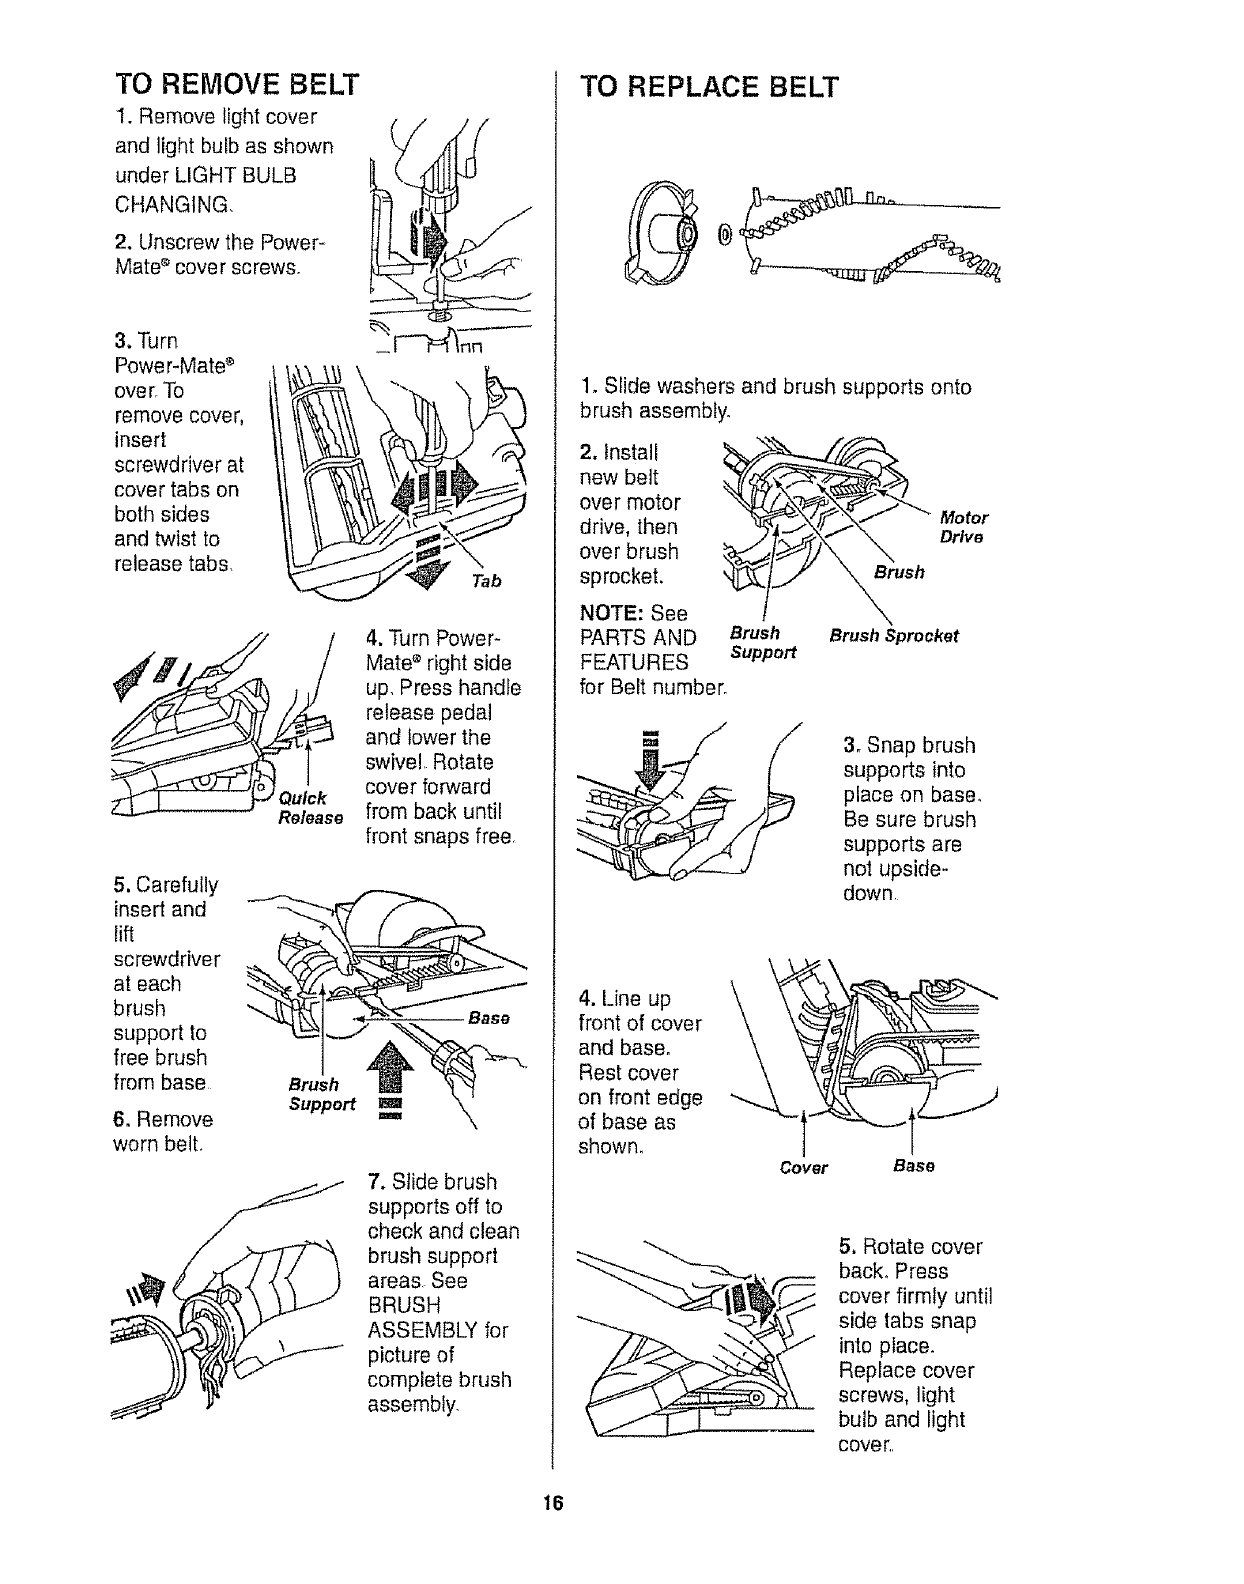 Page 16 of Kenmore Vacuum Cleaner 116.20512 User Guide